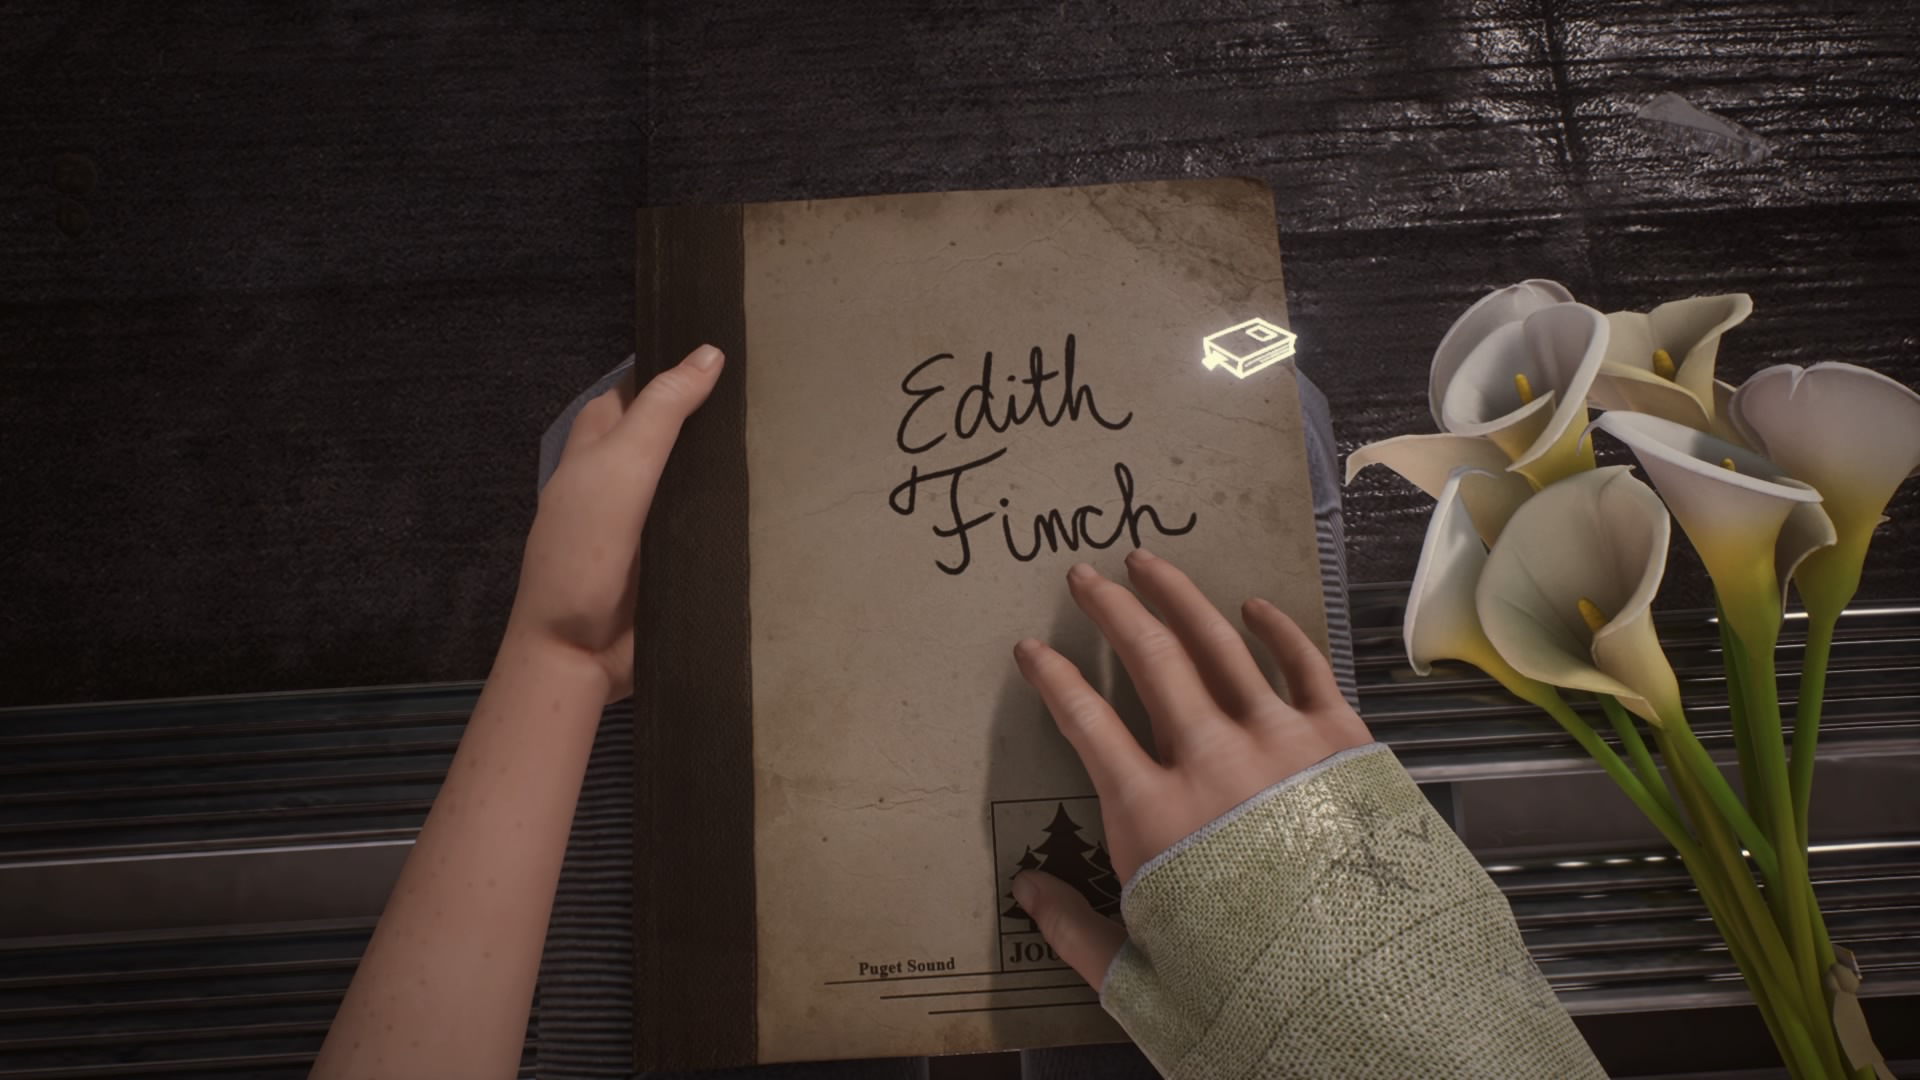 What Remains of Edith Finch - A delightful story that features powerfully sad themes.